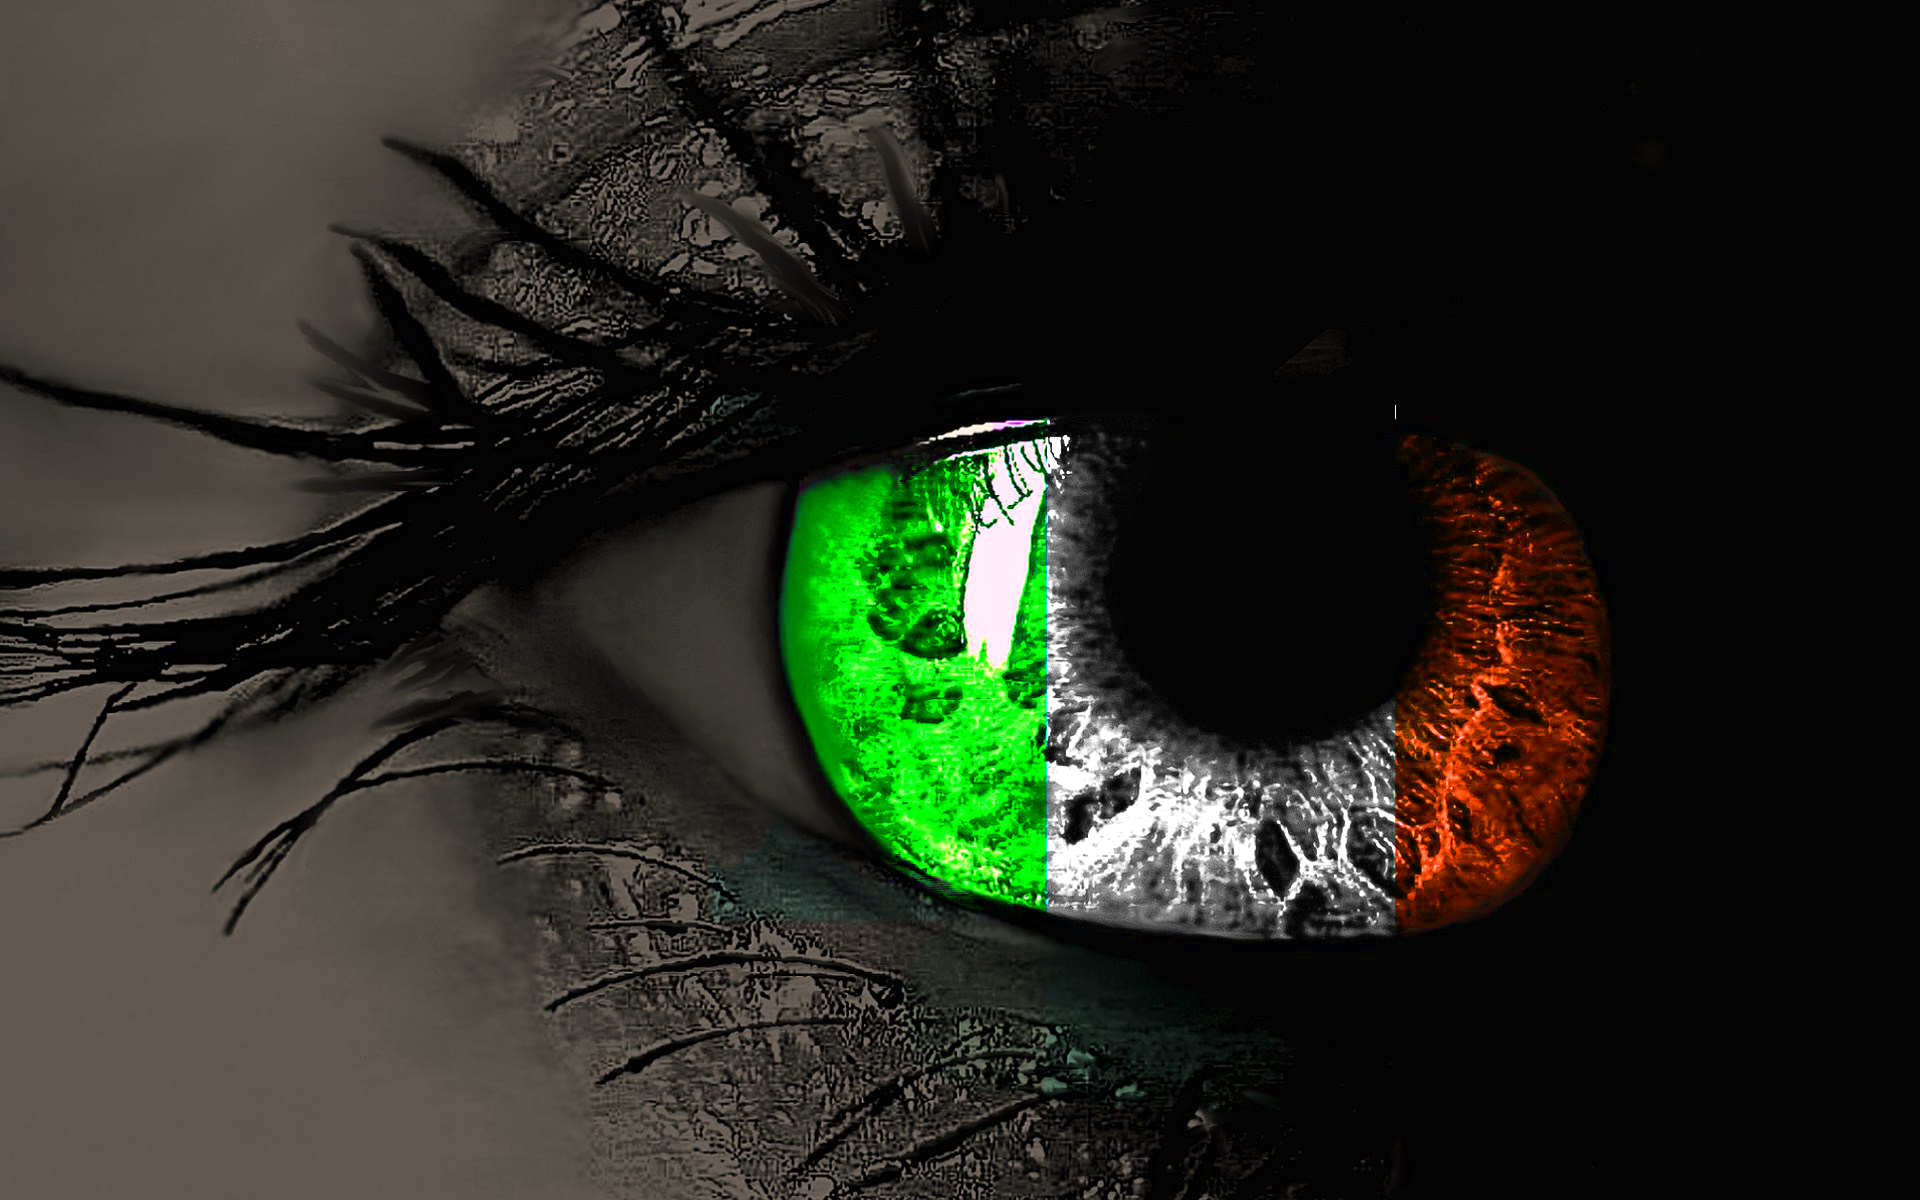 Irish Flag In Eyes Hd Wallpaper For Desktop Background Download